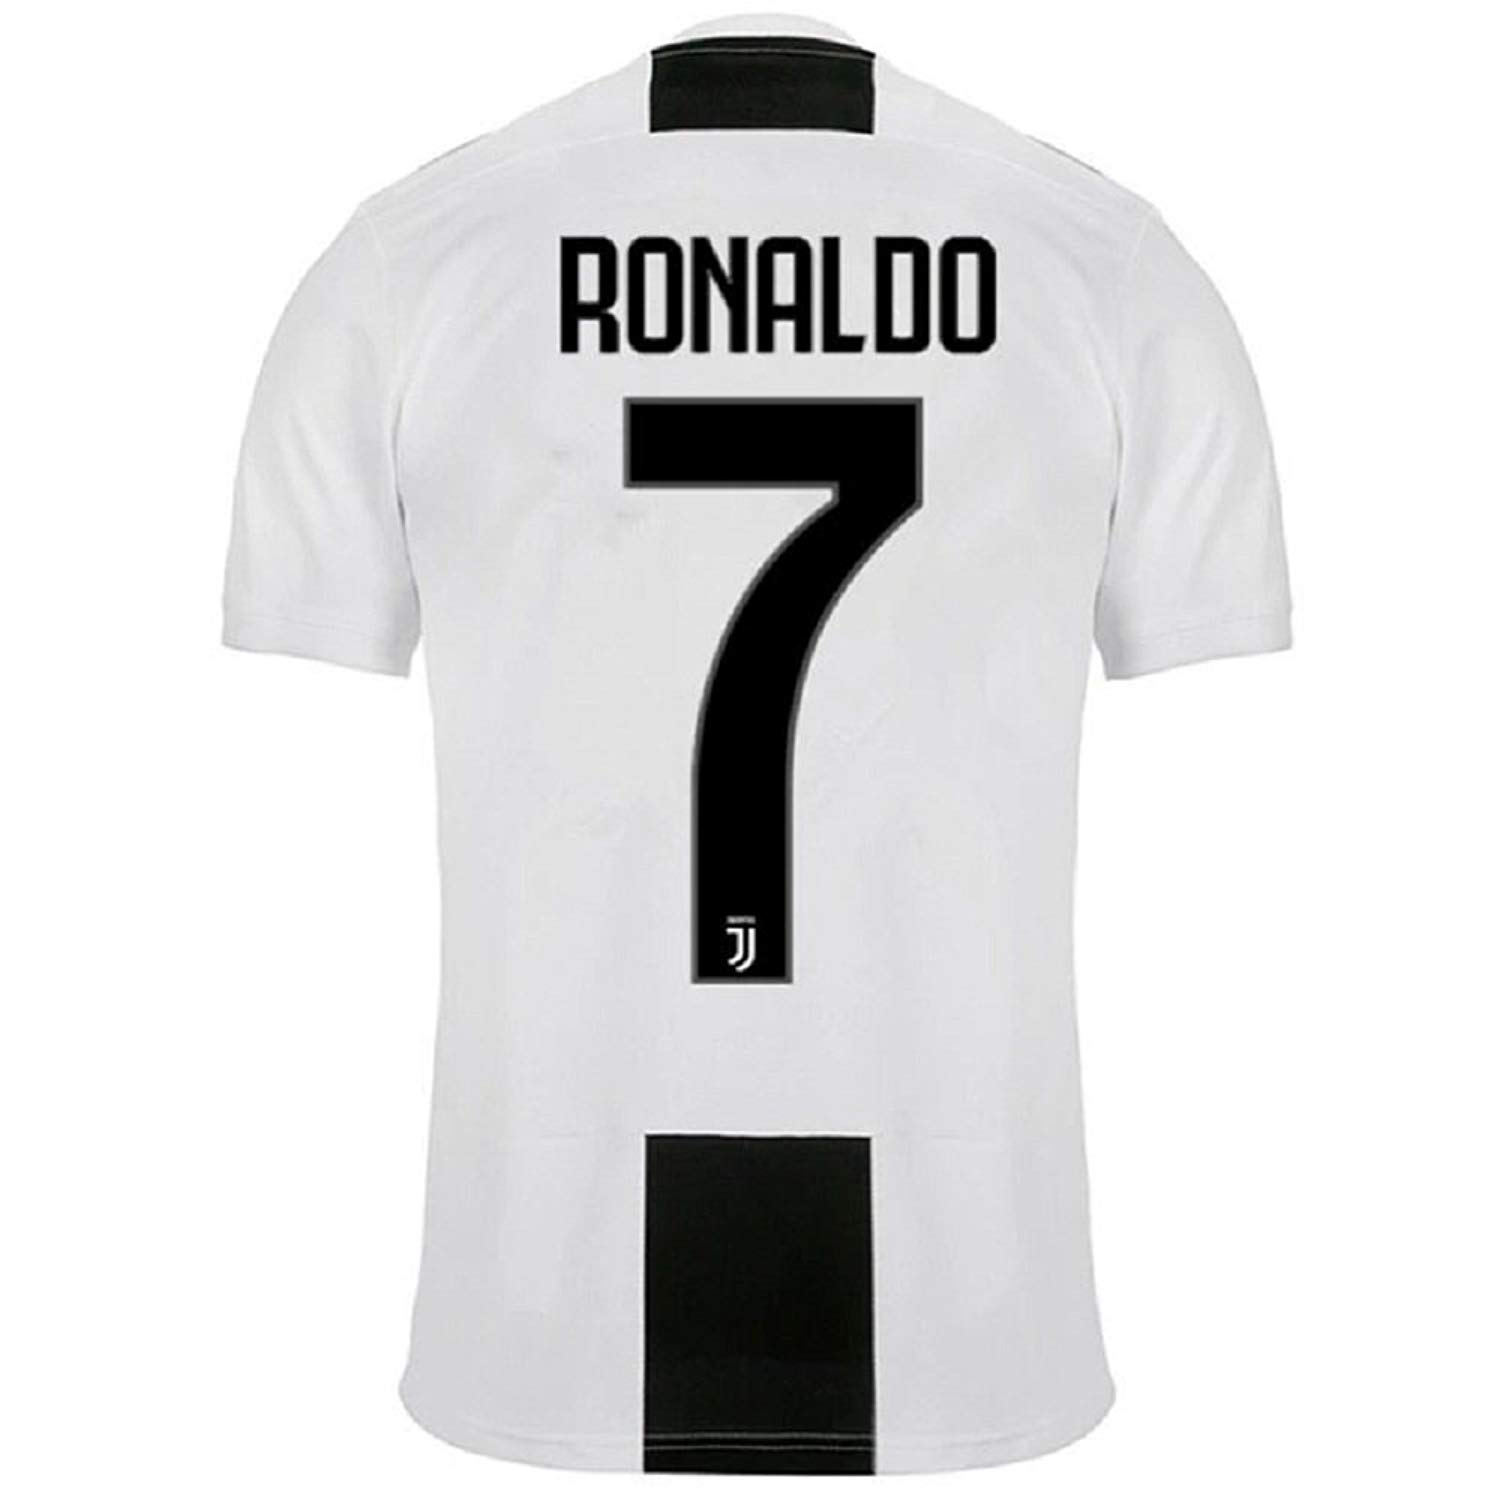 814d58364f8 Get Quotations · Barlener Men s Ronaldo Jerseys Juventus 7 Football Jersey  Soccer Jersey White